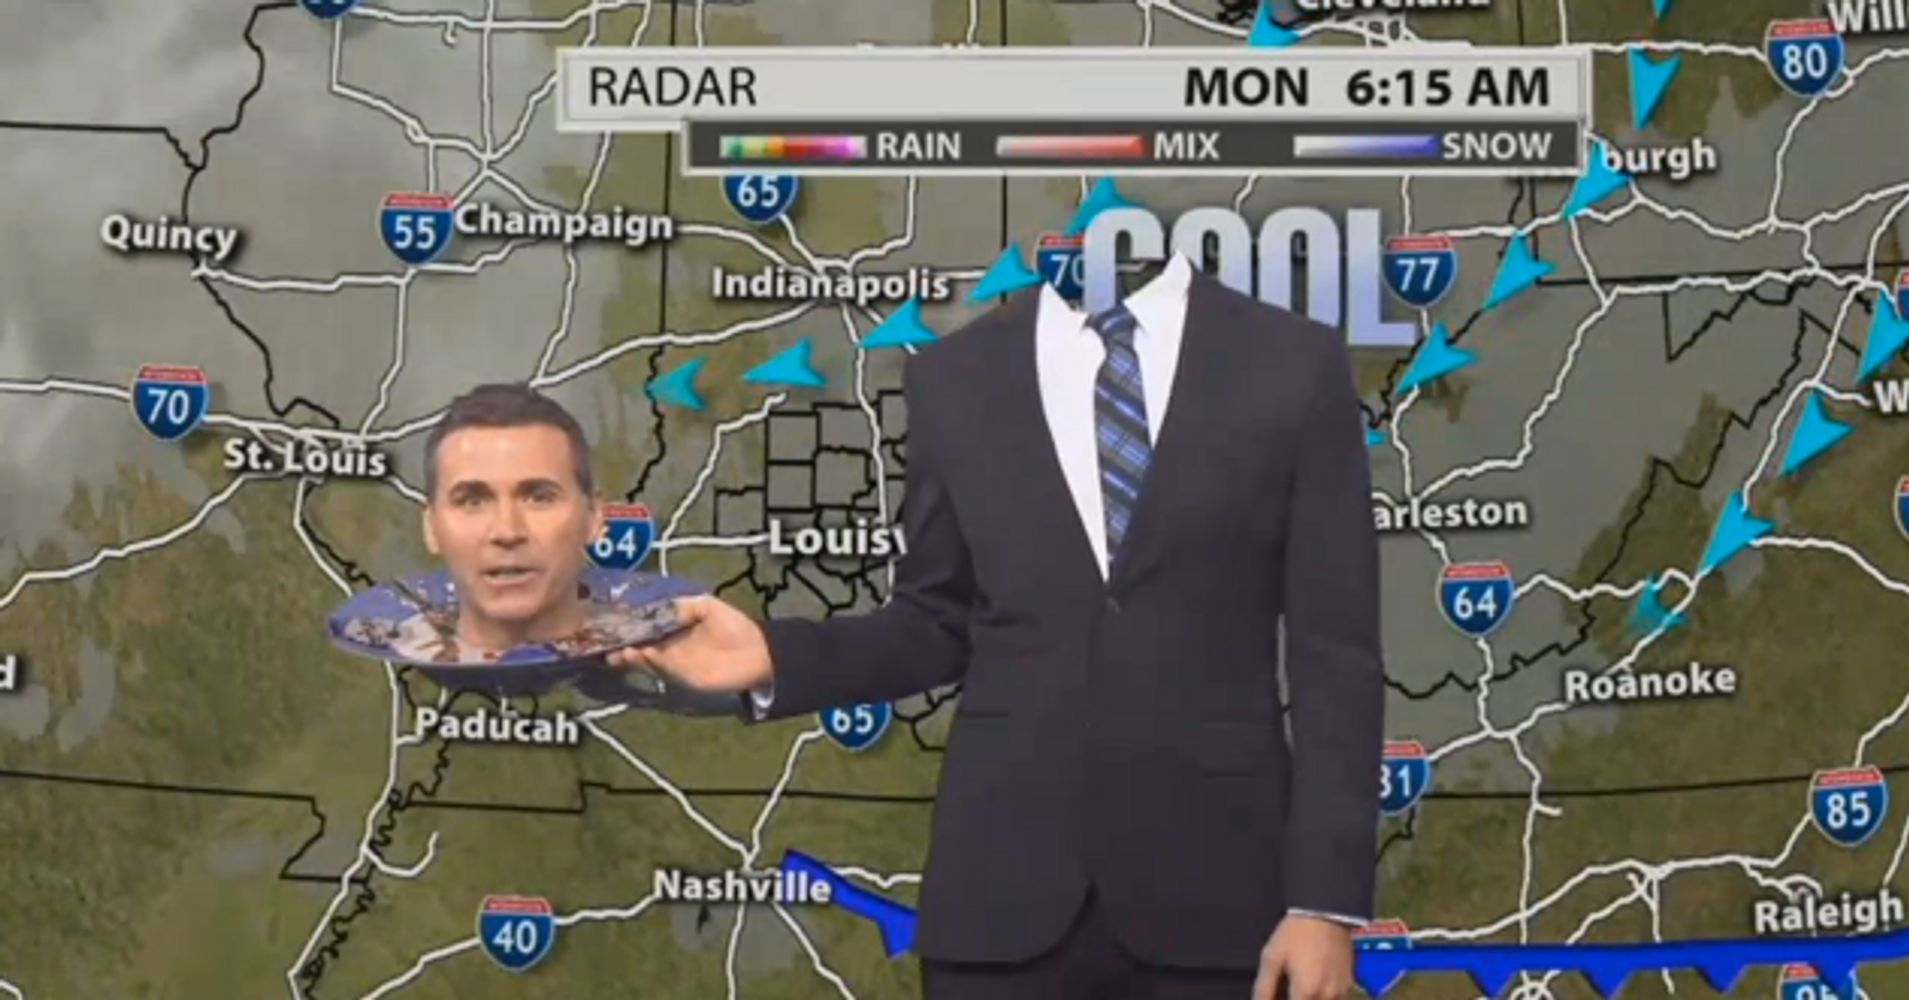 this meteorologist has a whirlwind of creepy halloween costumes huffpost - Meteorologist Halloween Costume